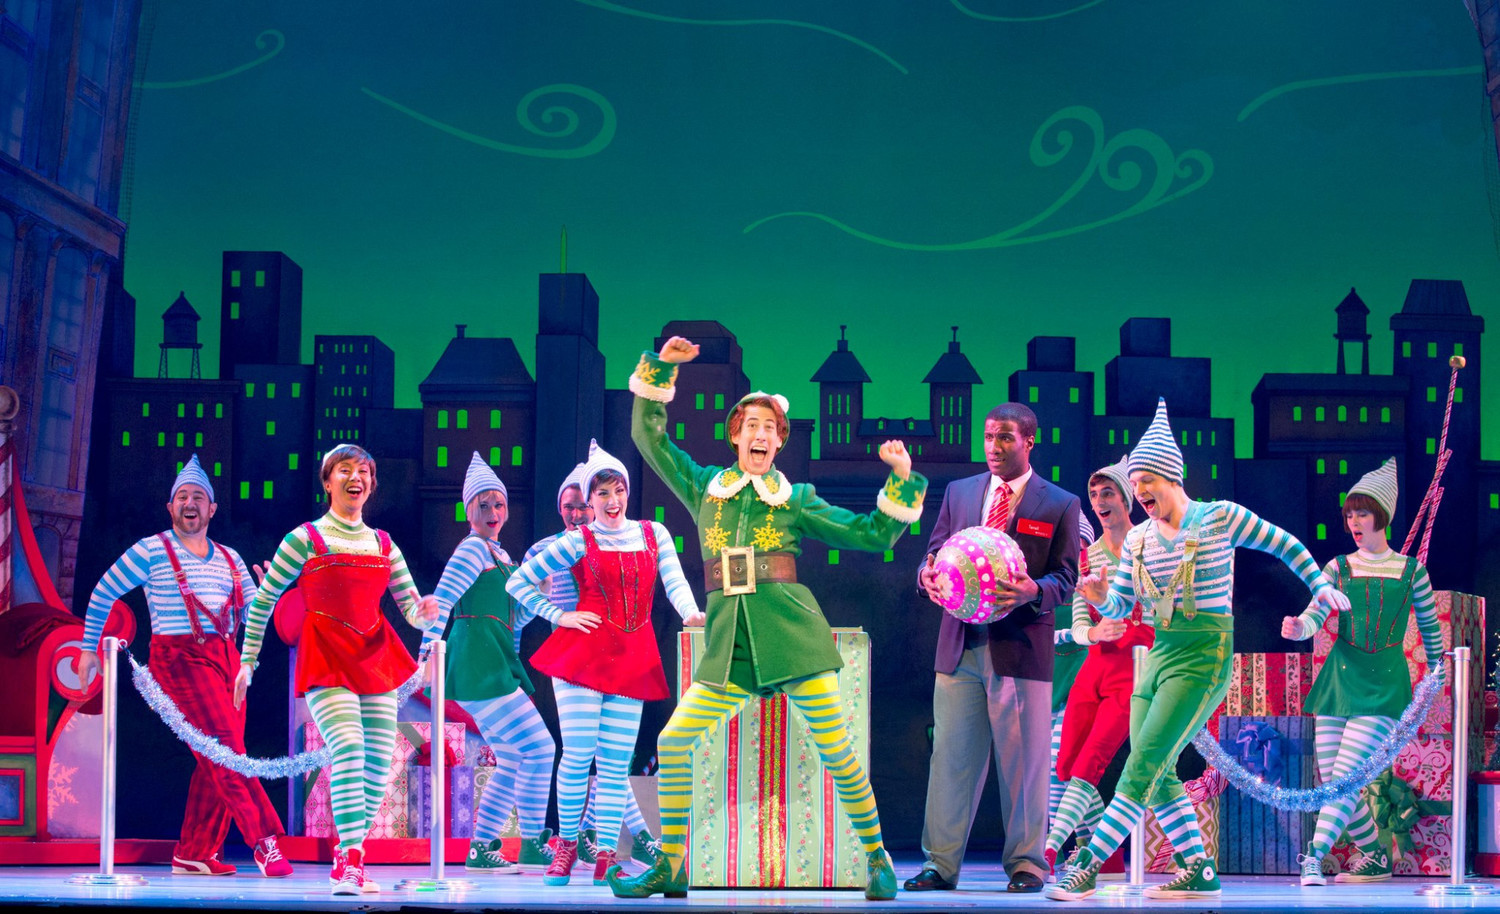 BWW Review: ELF THE MUSICAL Brings the Holiday Spirit to Sioux Falls